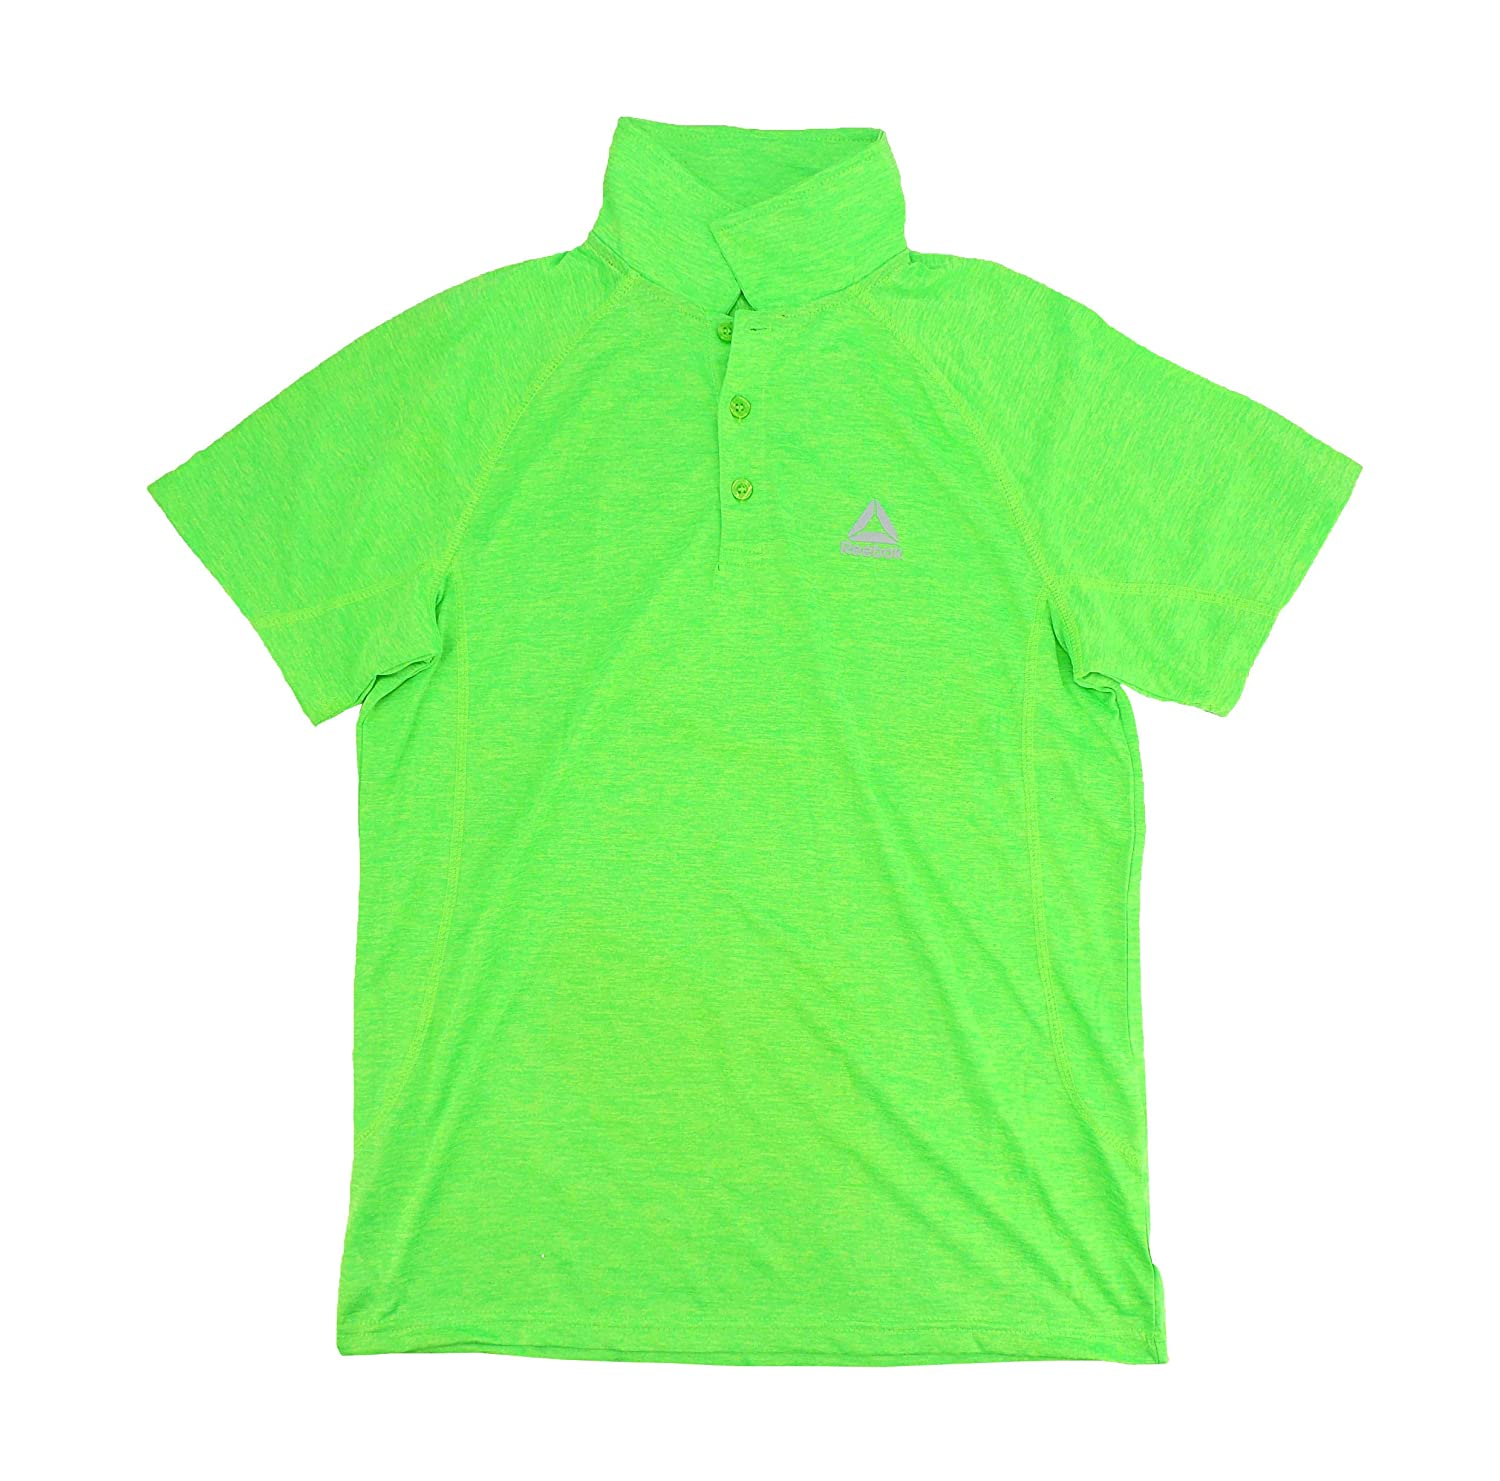 Reebok Boys Turtle Heather Green Polo Performance Shirt 14-16